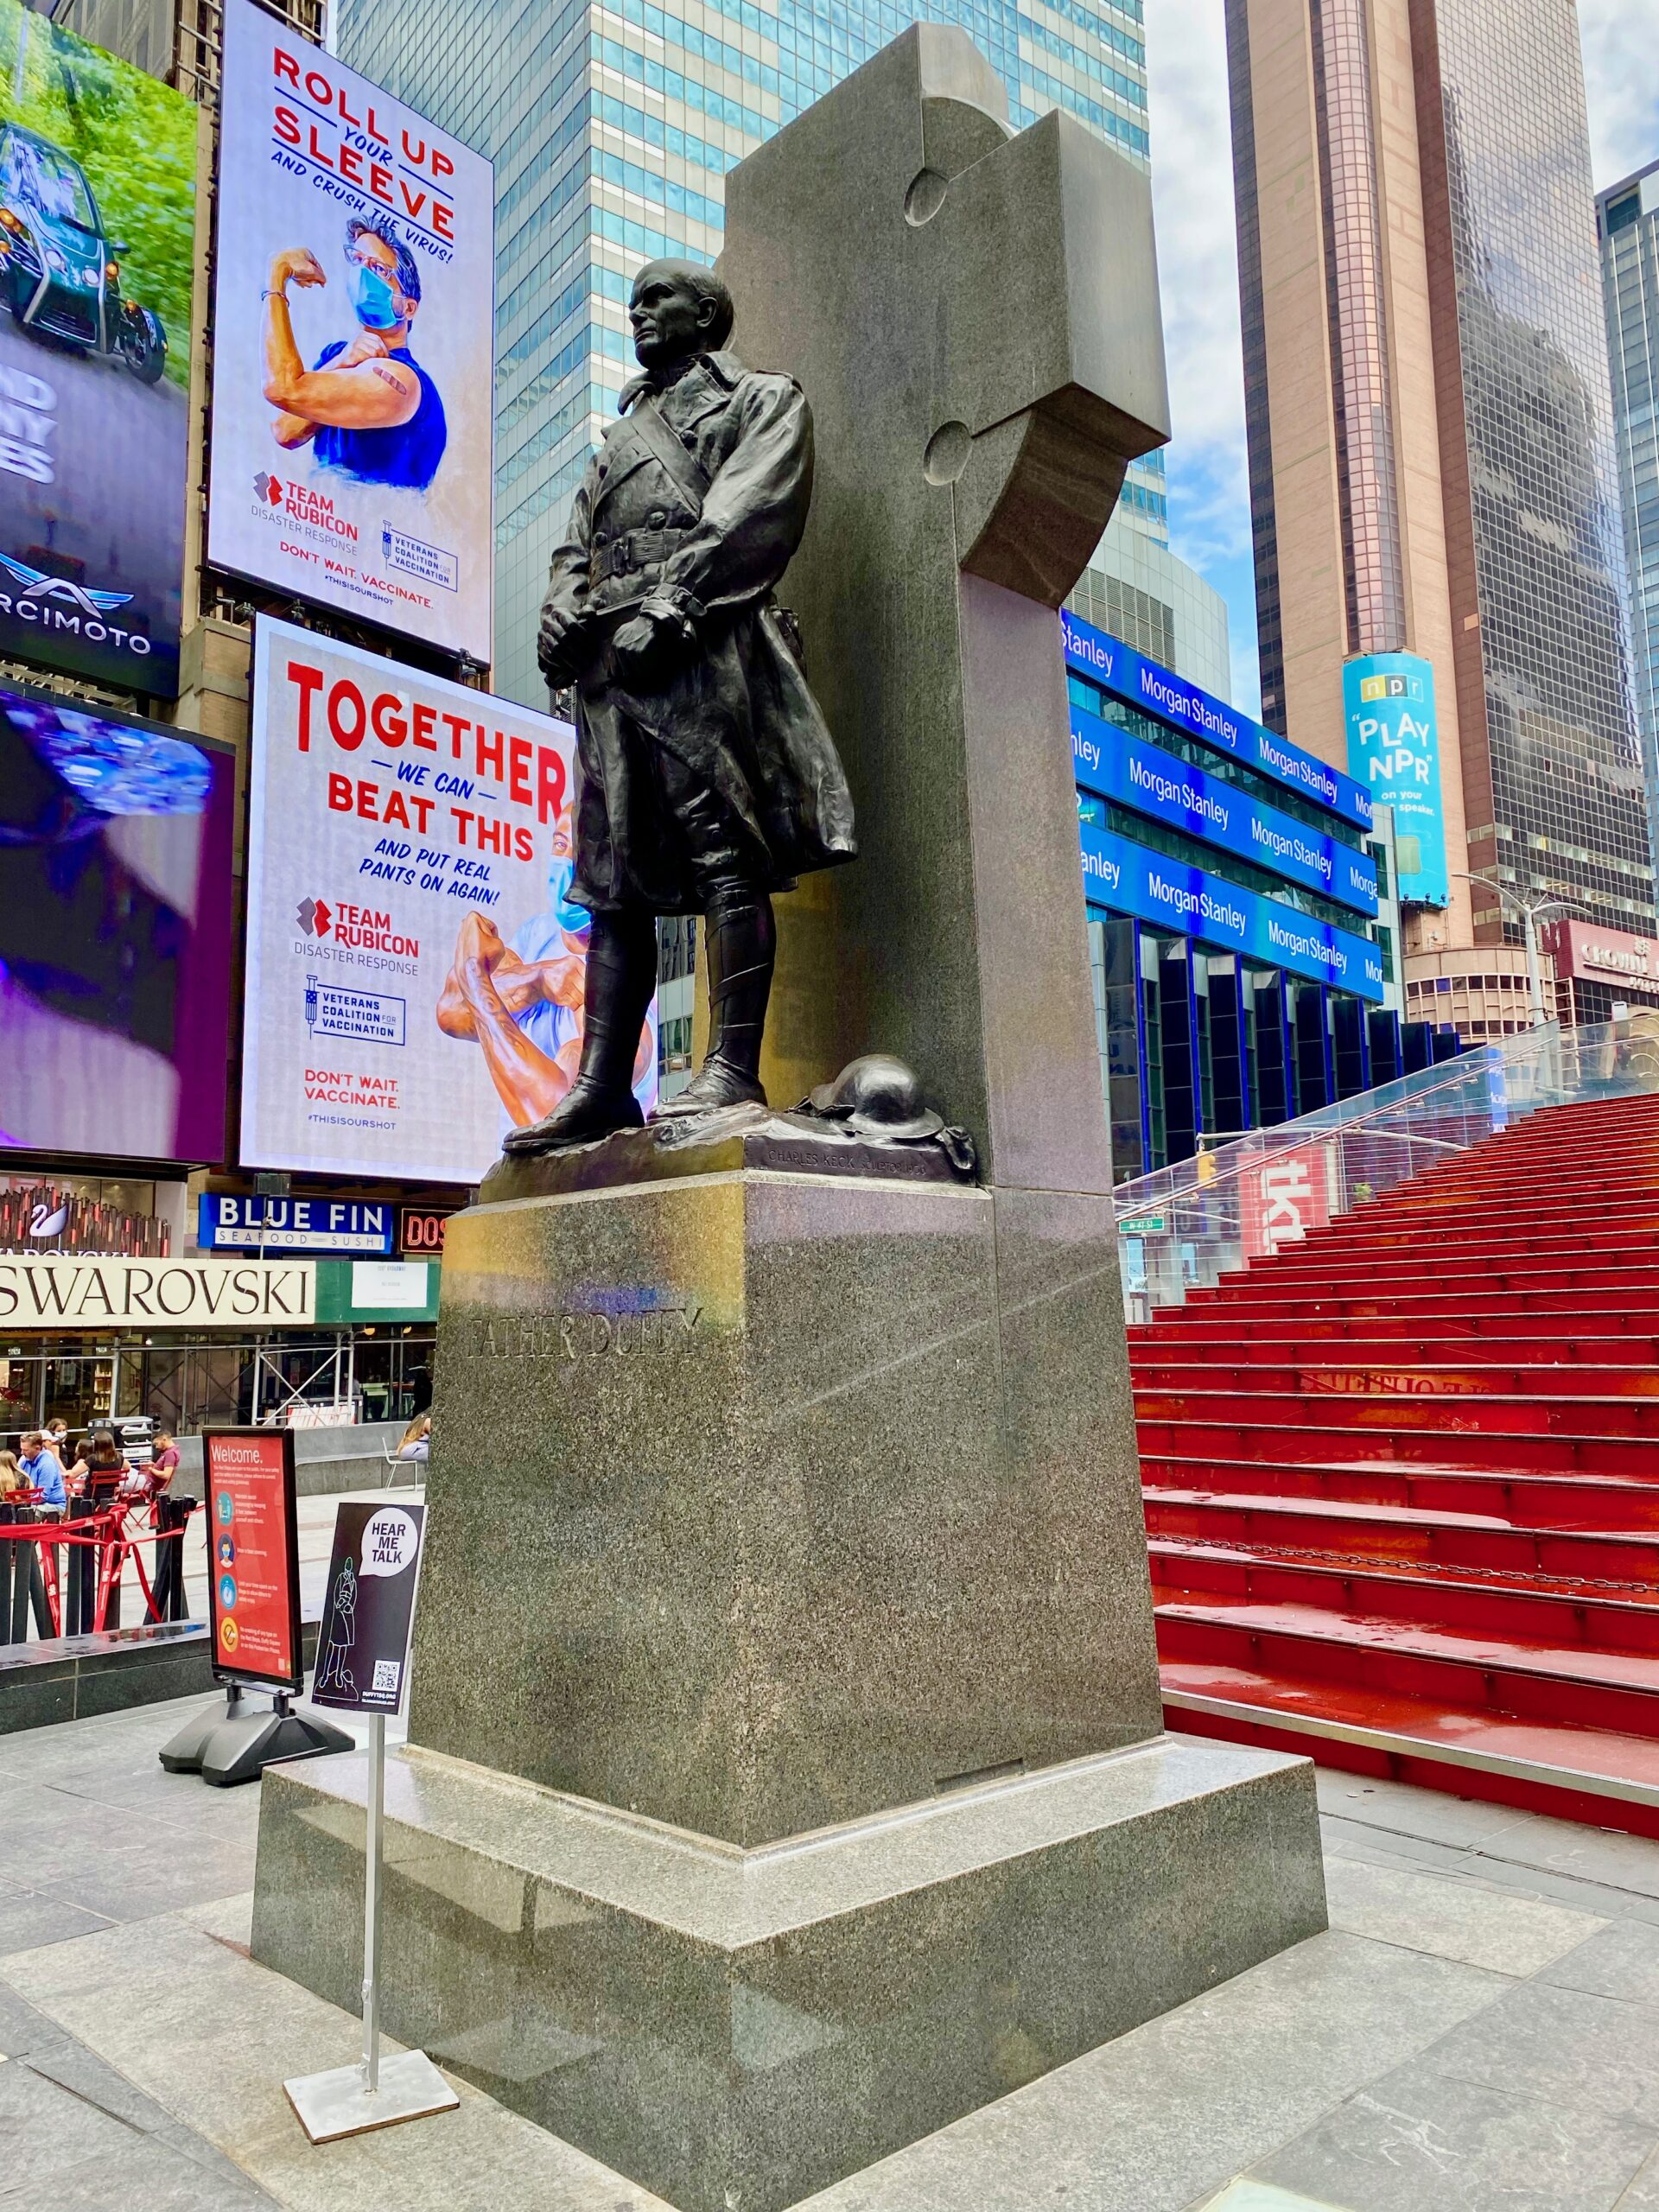 Statue of Father Duffy, one of the fun things to see in Times Square with kids